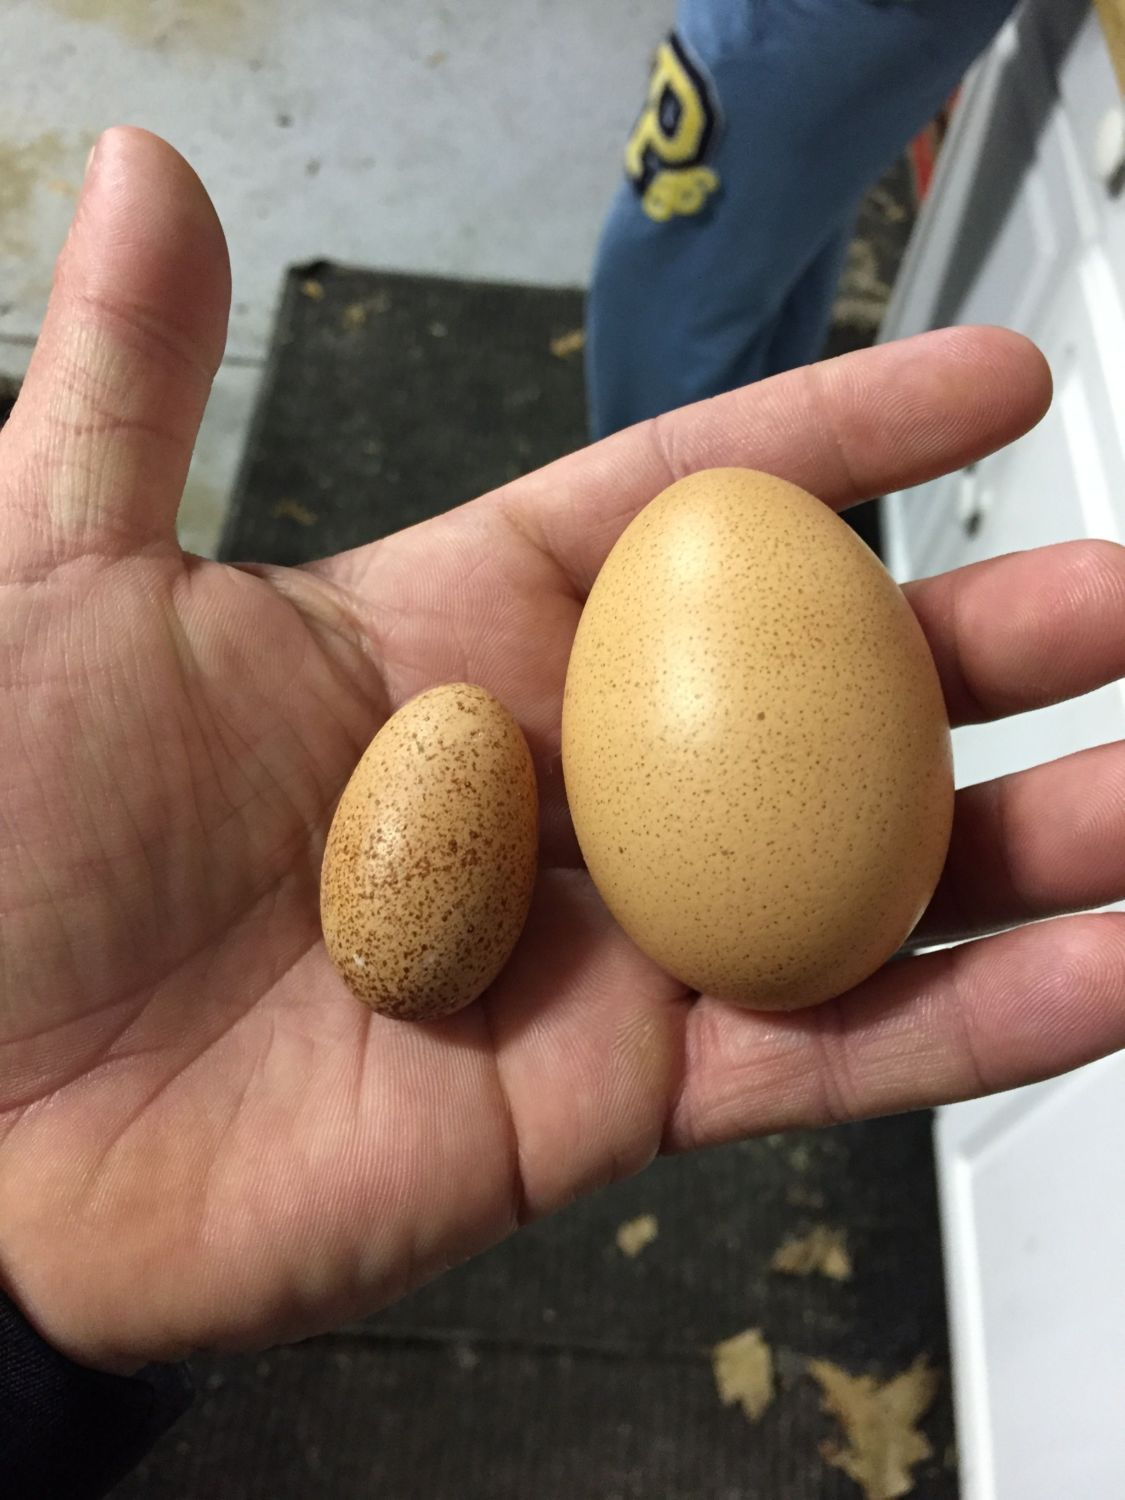 ScottN73's photos in What's the youngest a pullet can lay an egg?